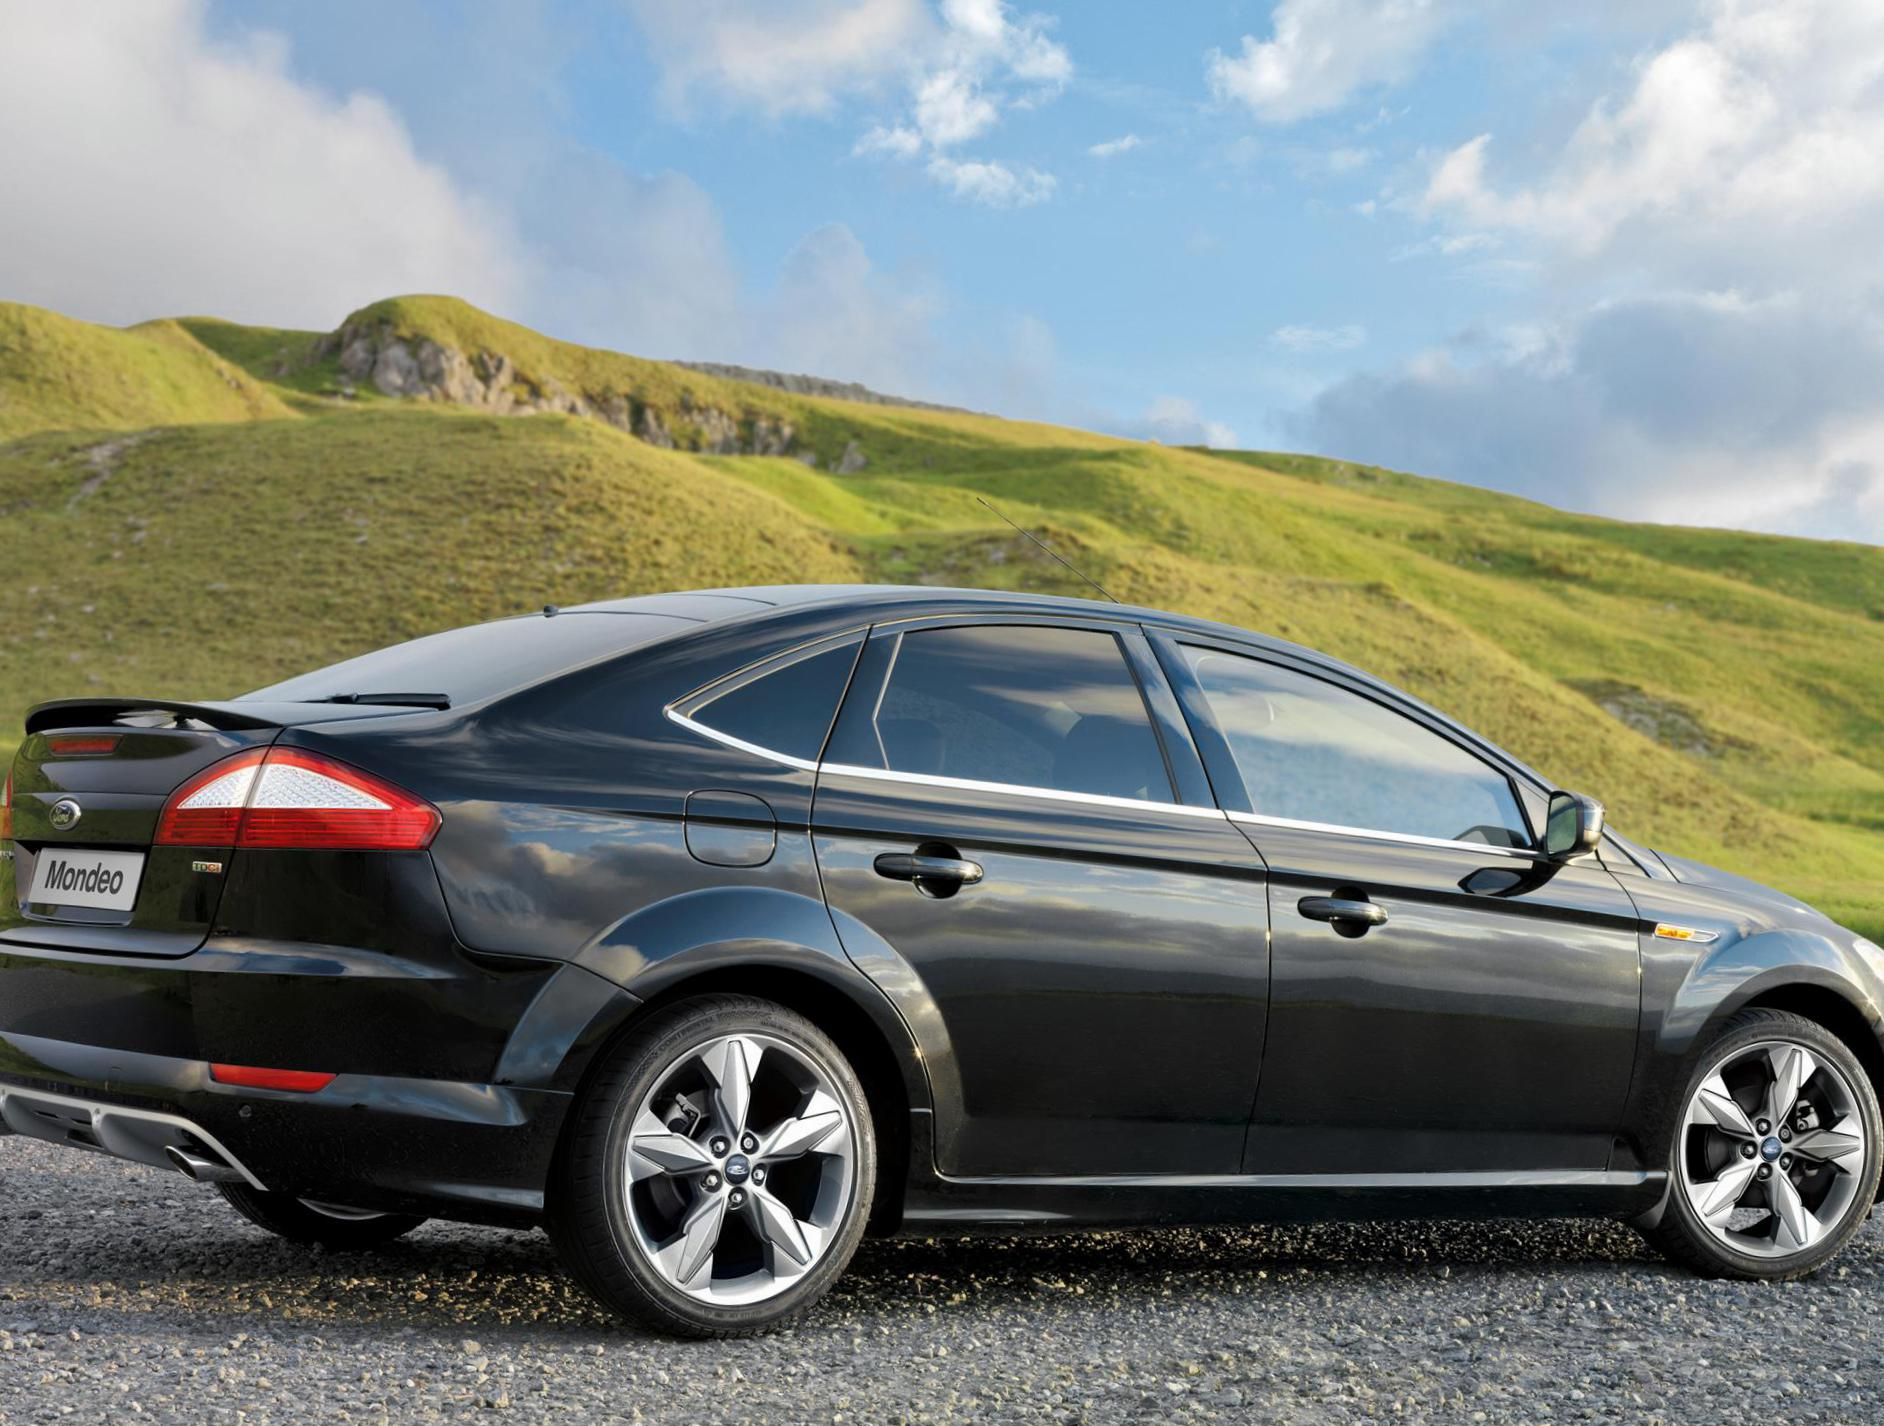 Ford Mondeo Hatchback models 2010